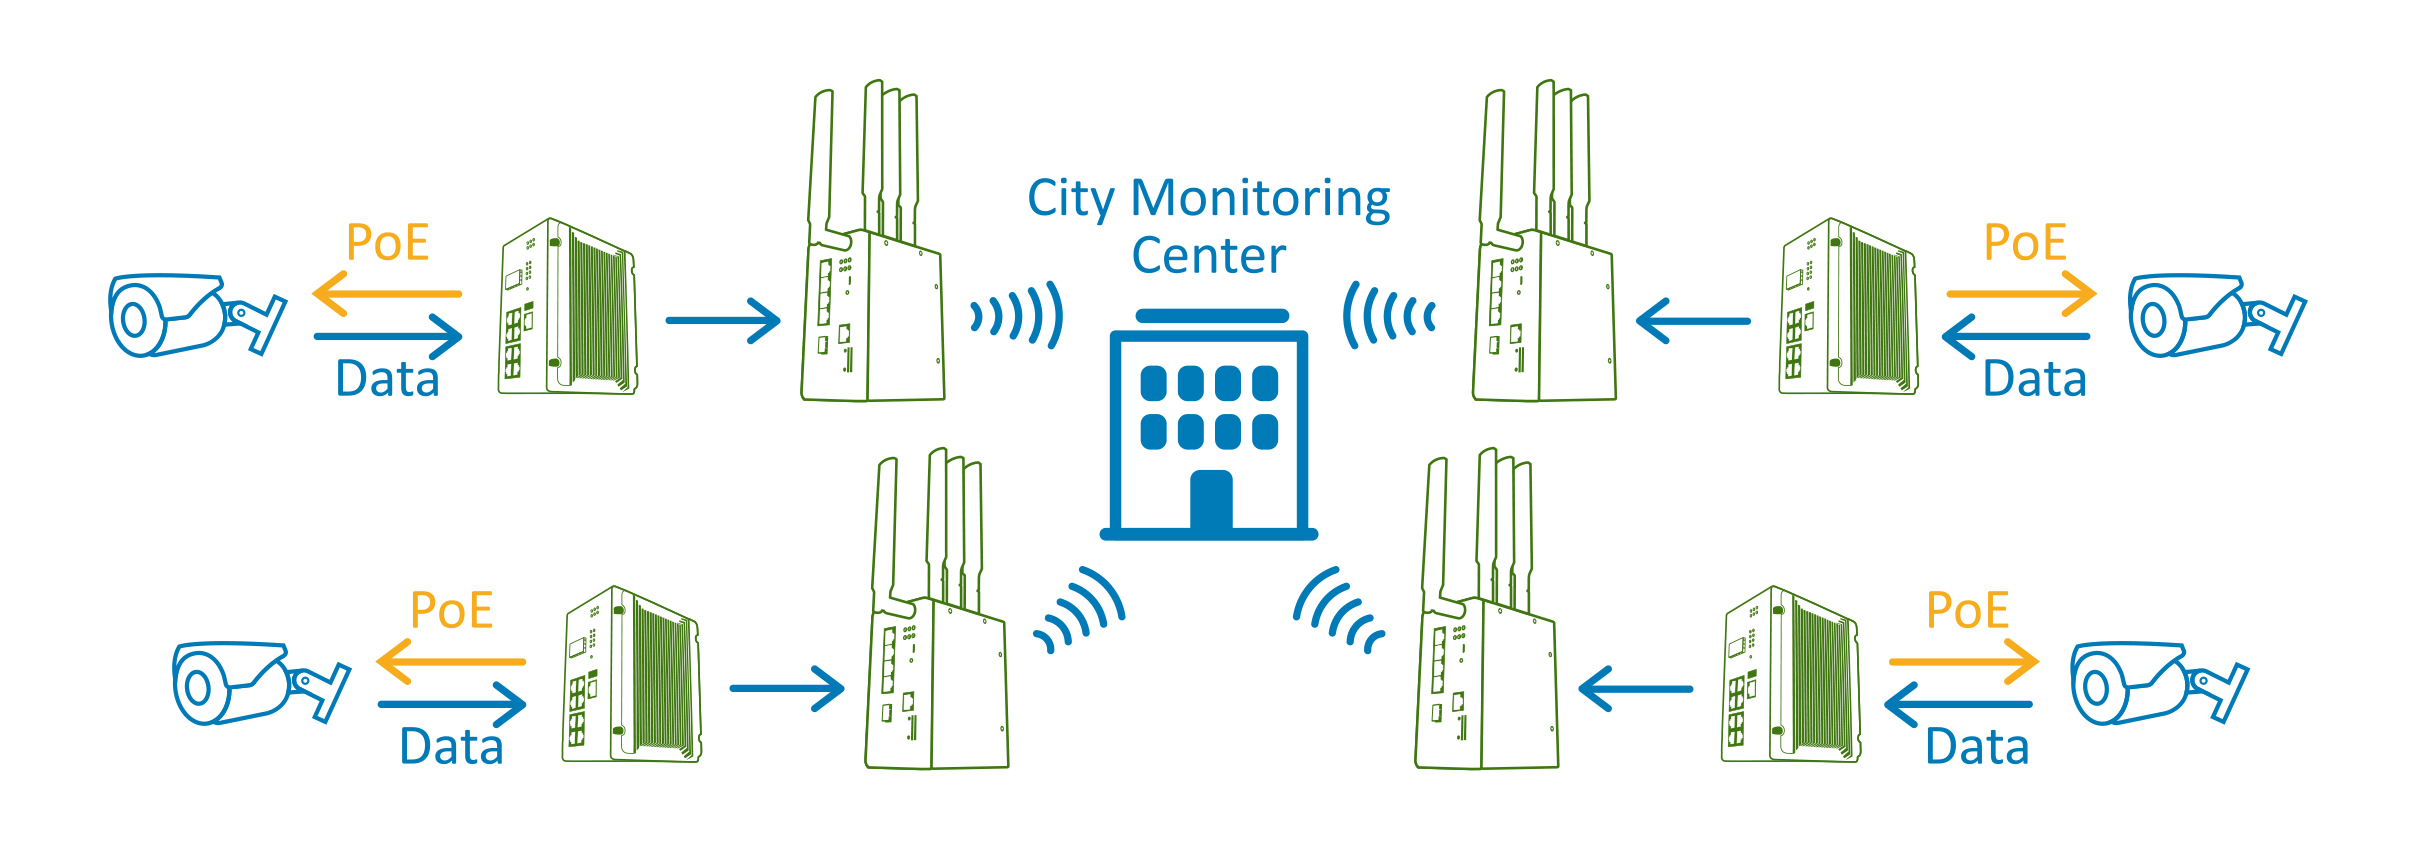 City surveillance network